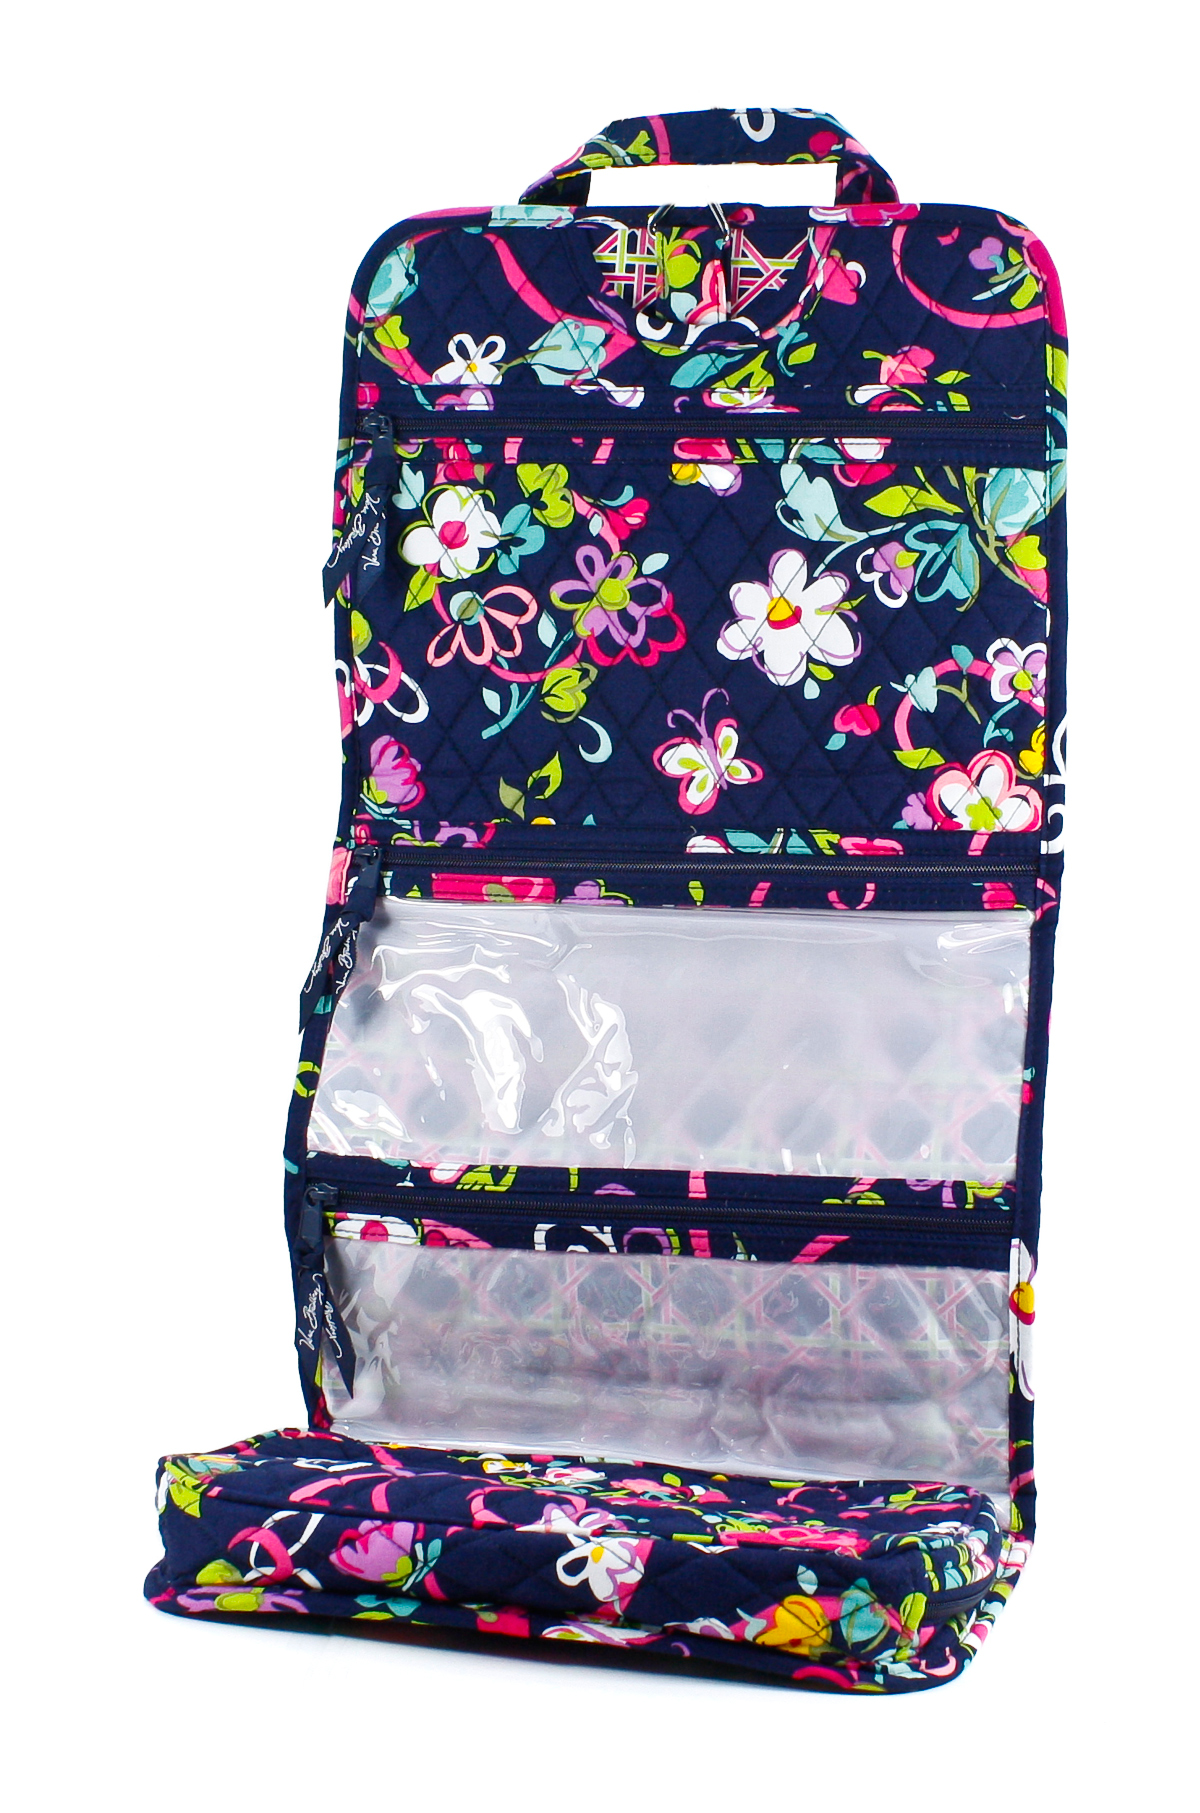 Giveaway Vera Bradley Travel Organizer ENDED